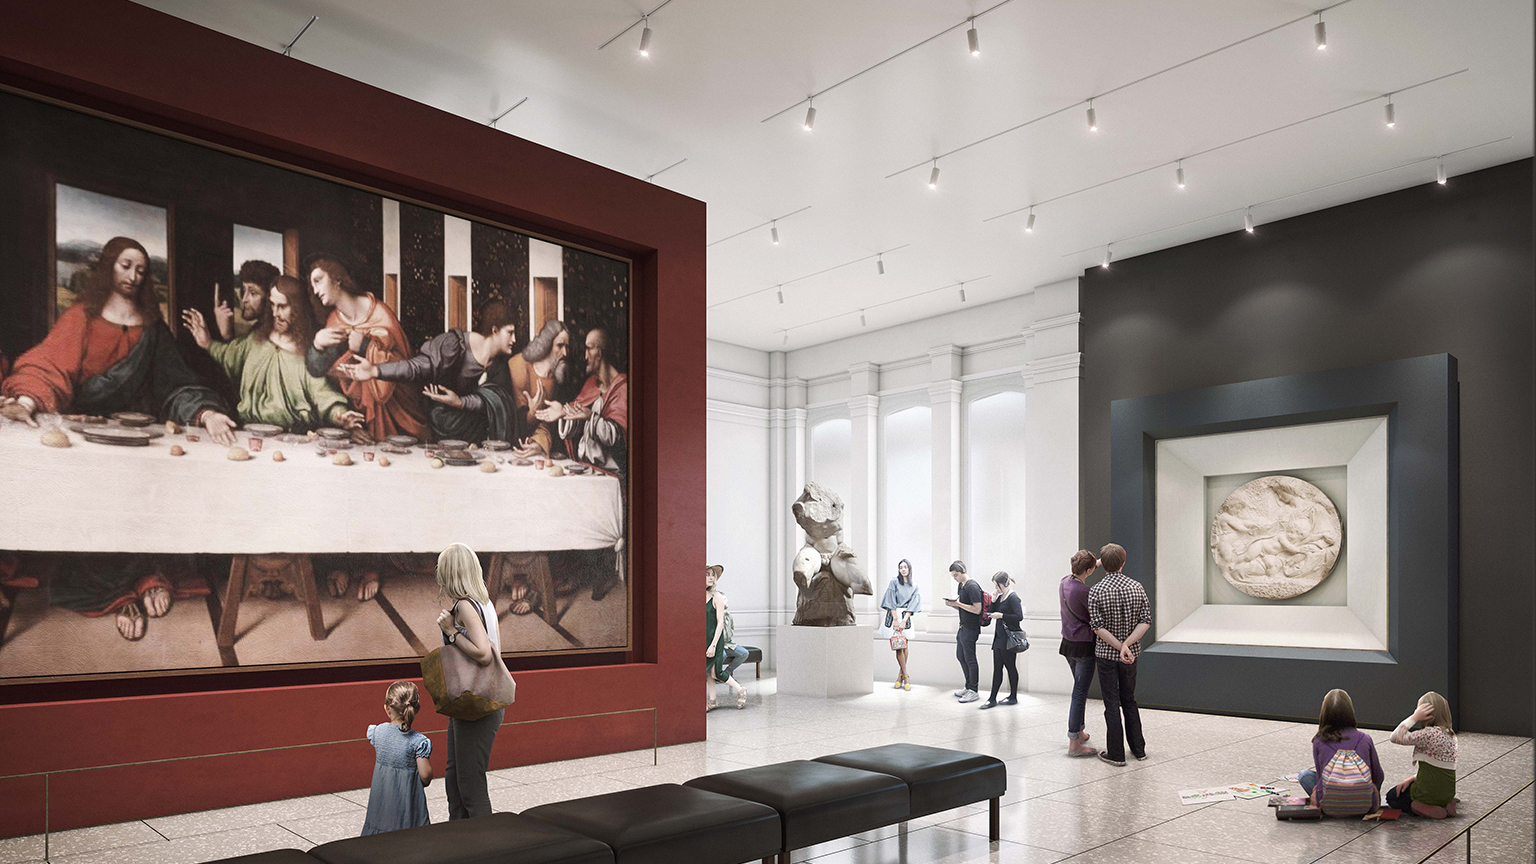 Royal Academy Collection Gallery, 2018